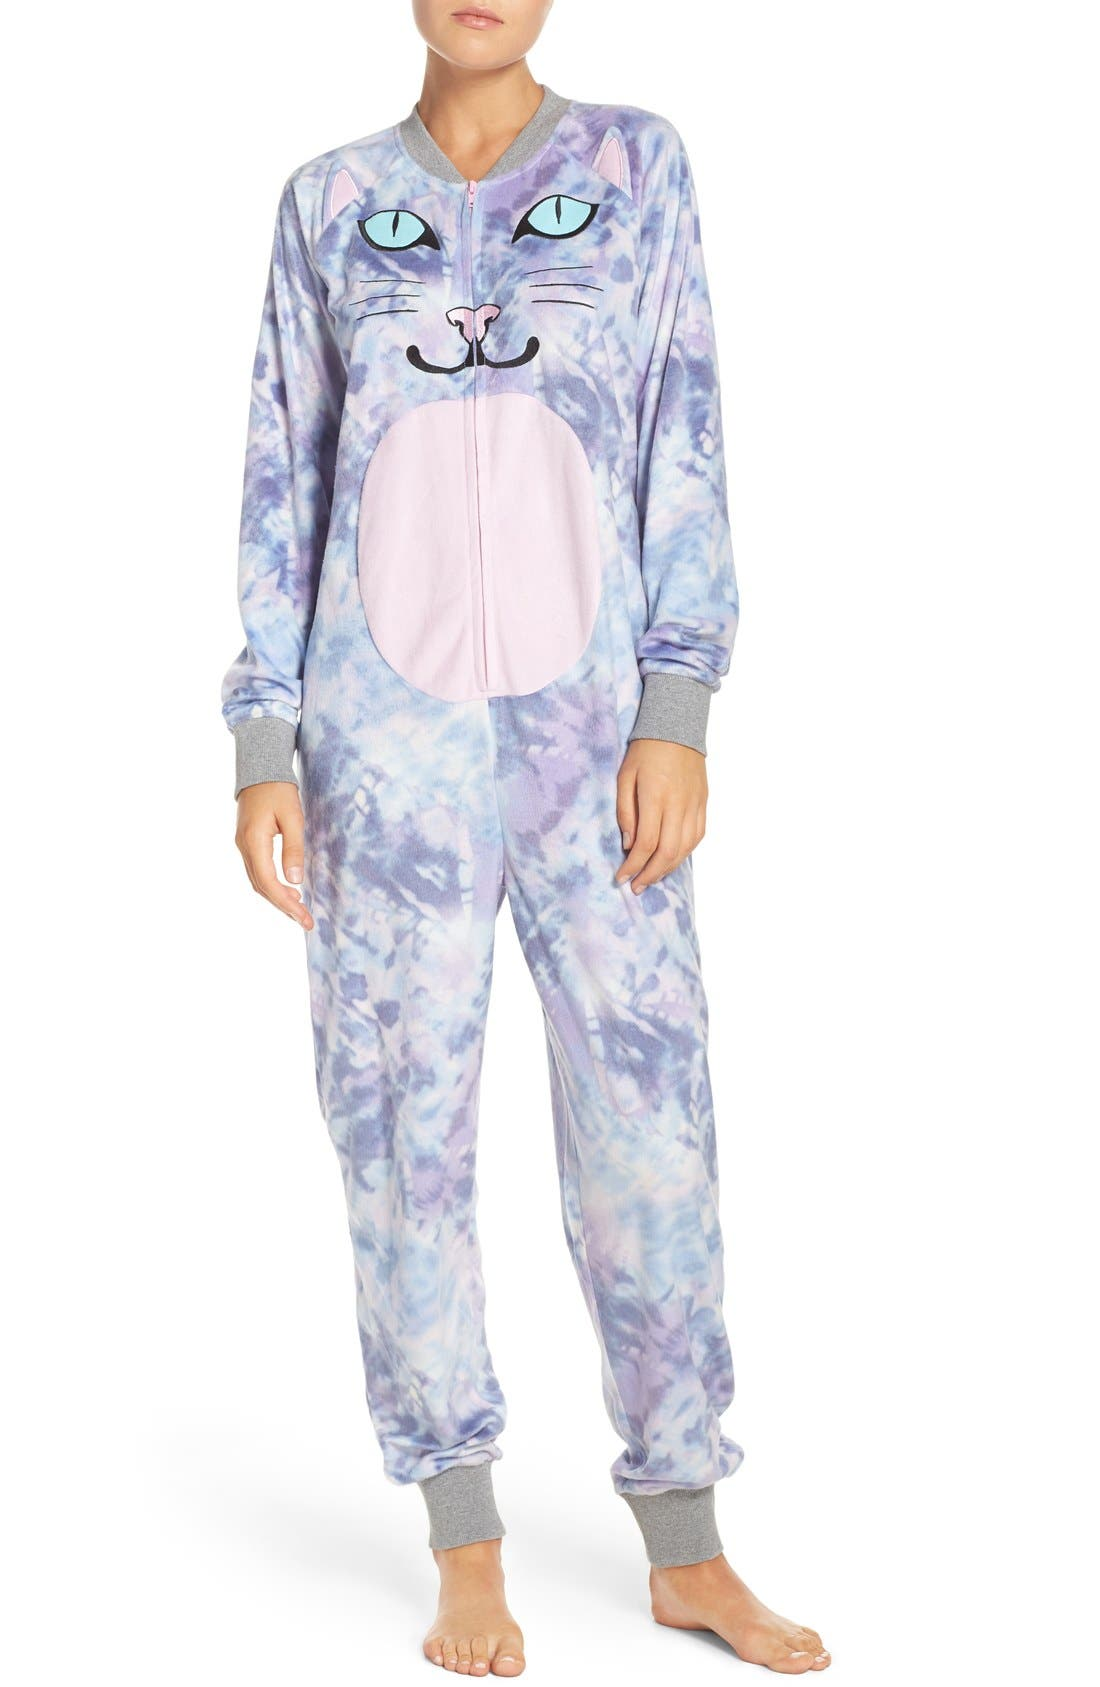 Alternate Image 1 Selected - COZY ZOE Critter One-Piece Pajamas